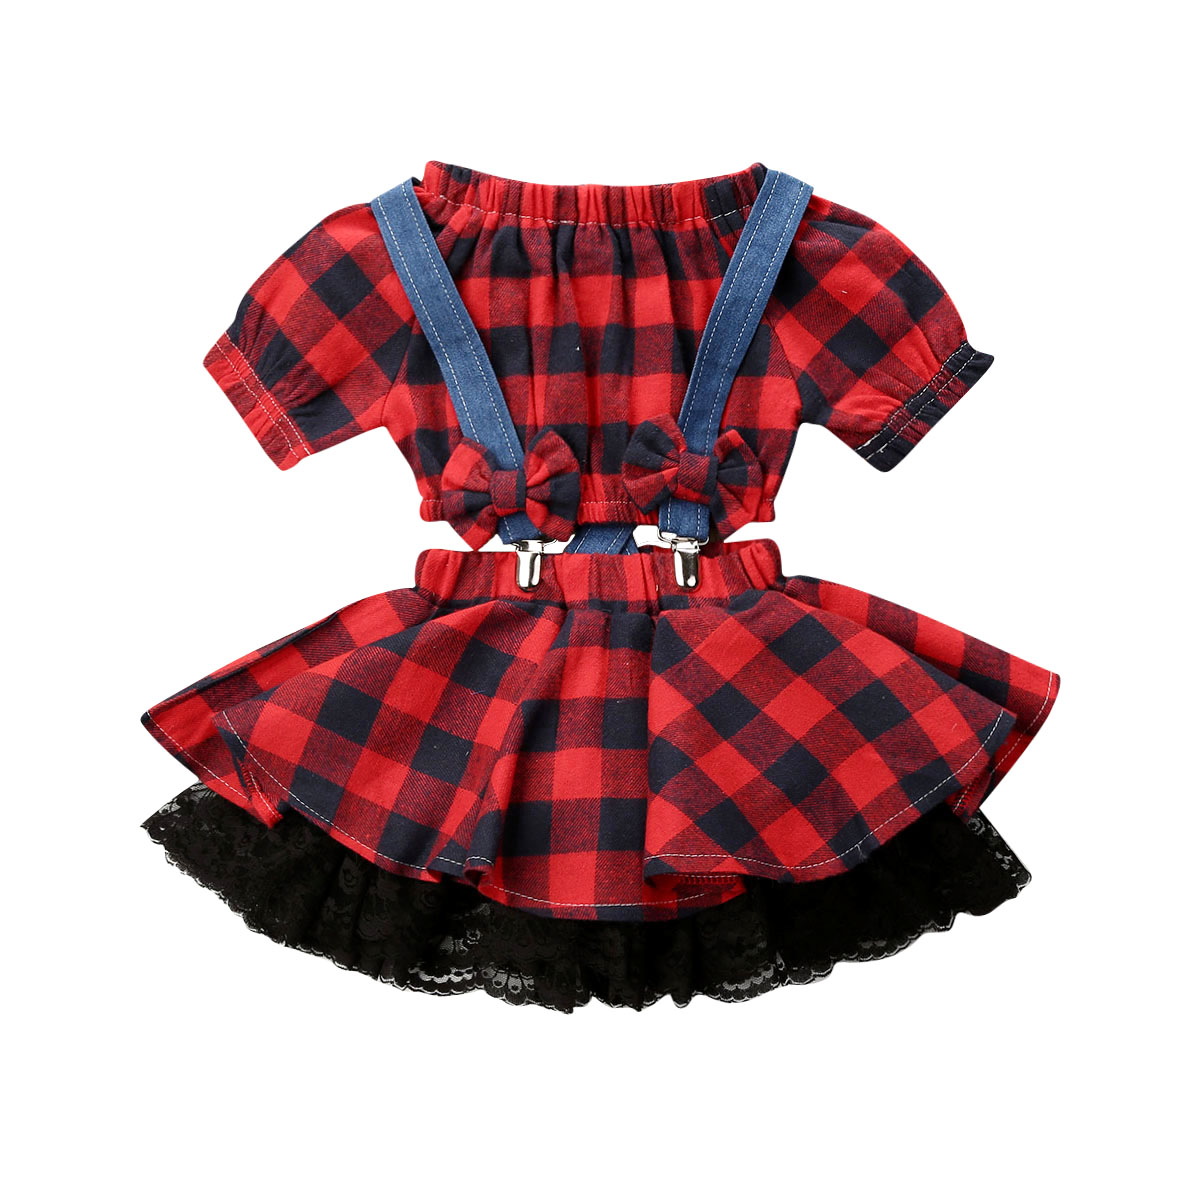 1-6Year Toddler Kid Baby Girls Clothing Set Christmas Red Plaid Tops + Lace Bow Tutu Skirts Children Xmas Outfits